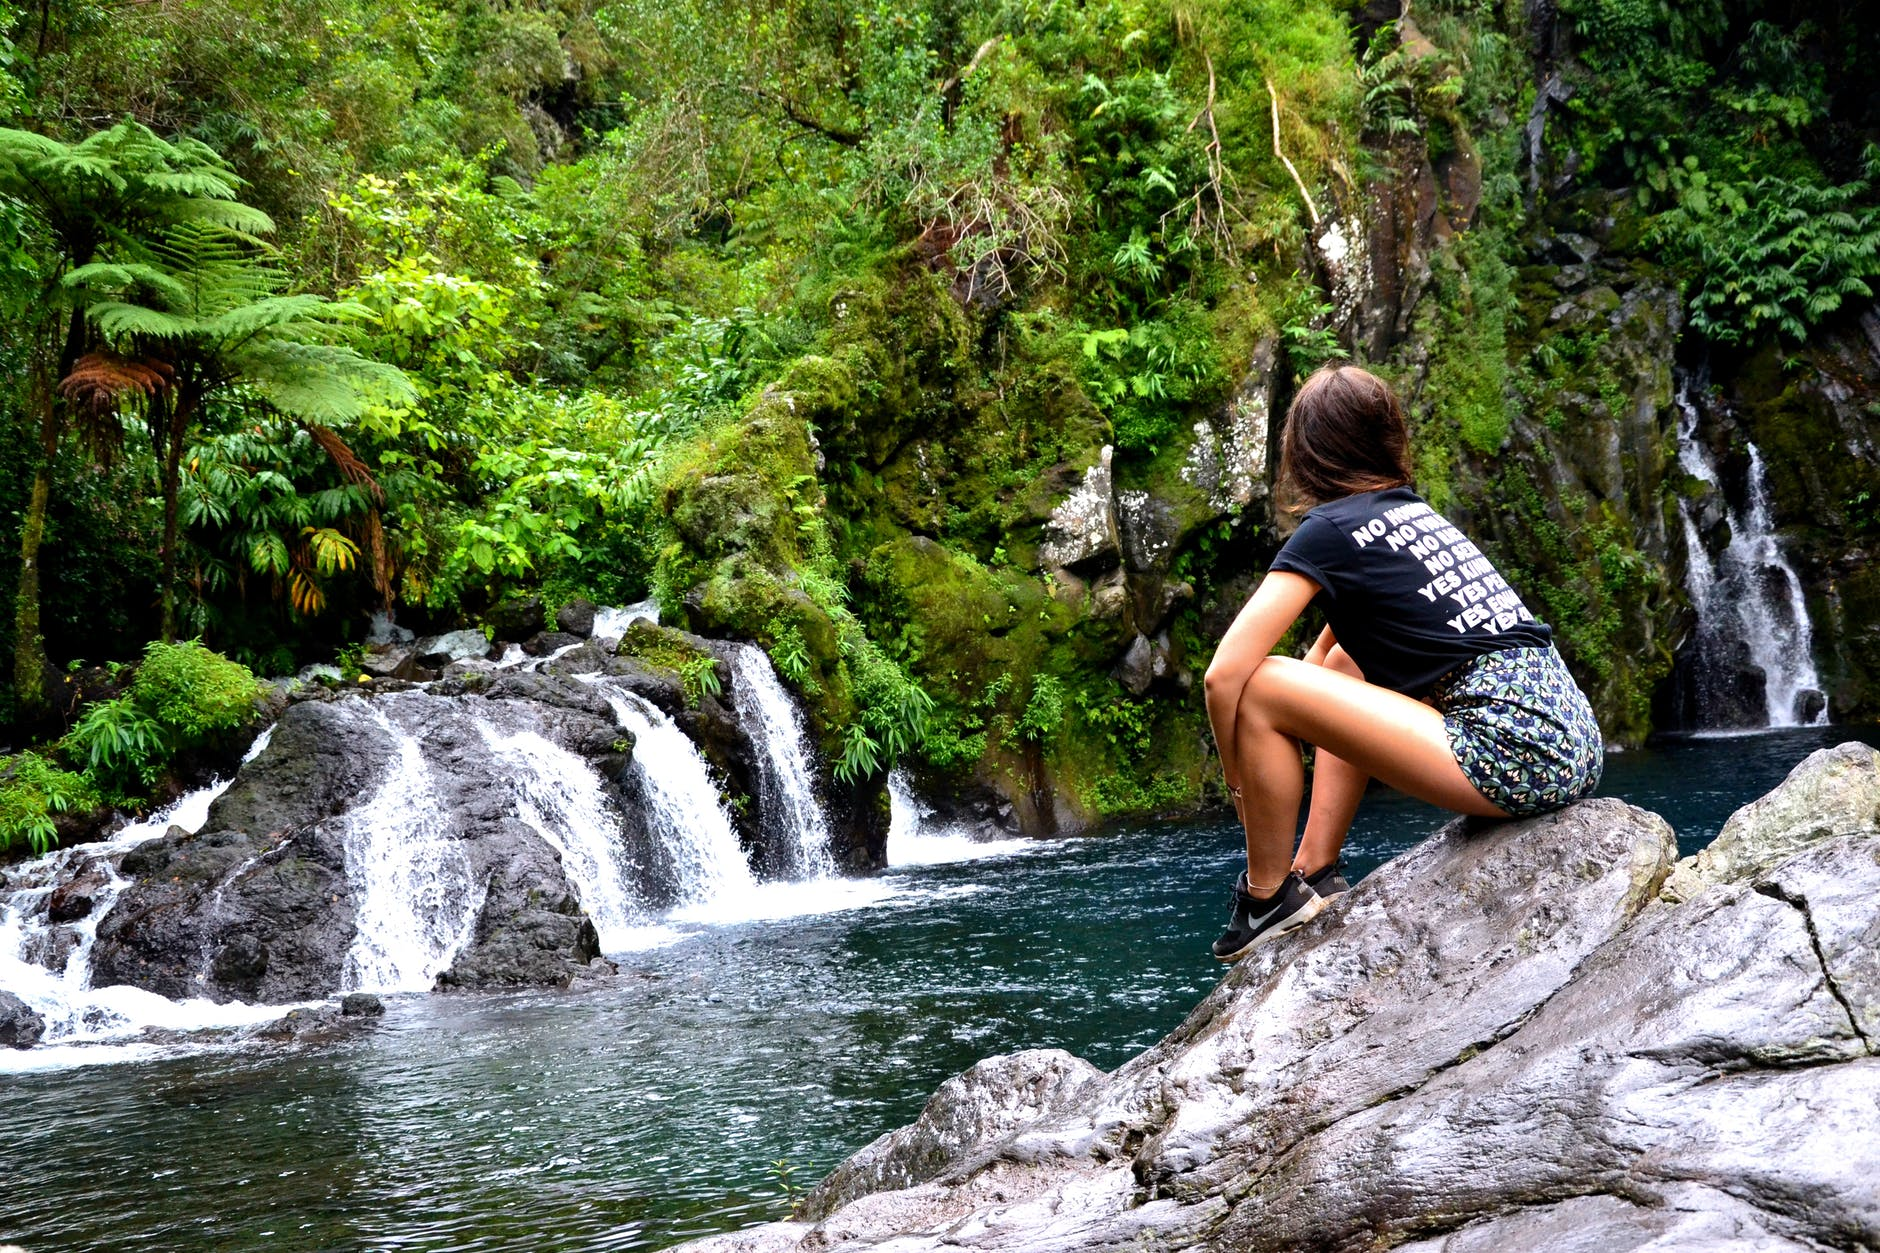 A woman sits on a boulder overlooking waterfalls into a river. She is using the ecospiritual practices to reconnect to the Earth and her sense of deep belonging. If you are looking for guidance on reconnecting and healing with the Earth, please reach out! I am an ecotherapy coach in Berkeley, CA.